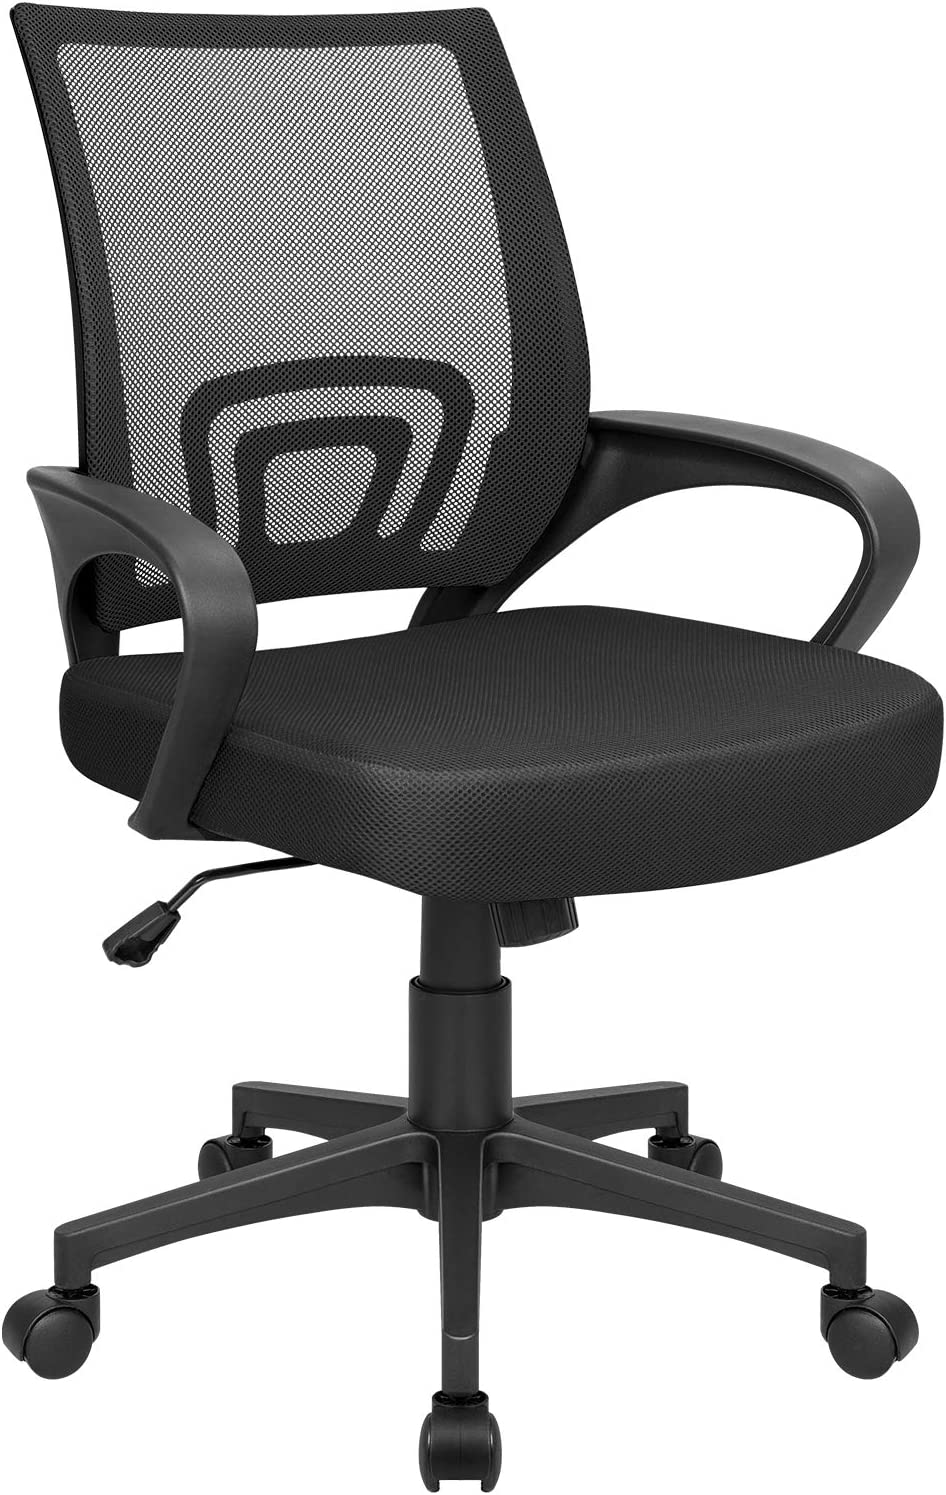 Homall Office Mid Back Computer Ergonomic Desk Chair, Black